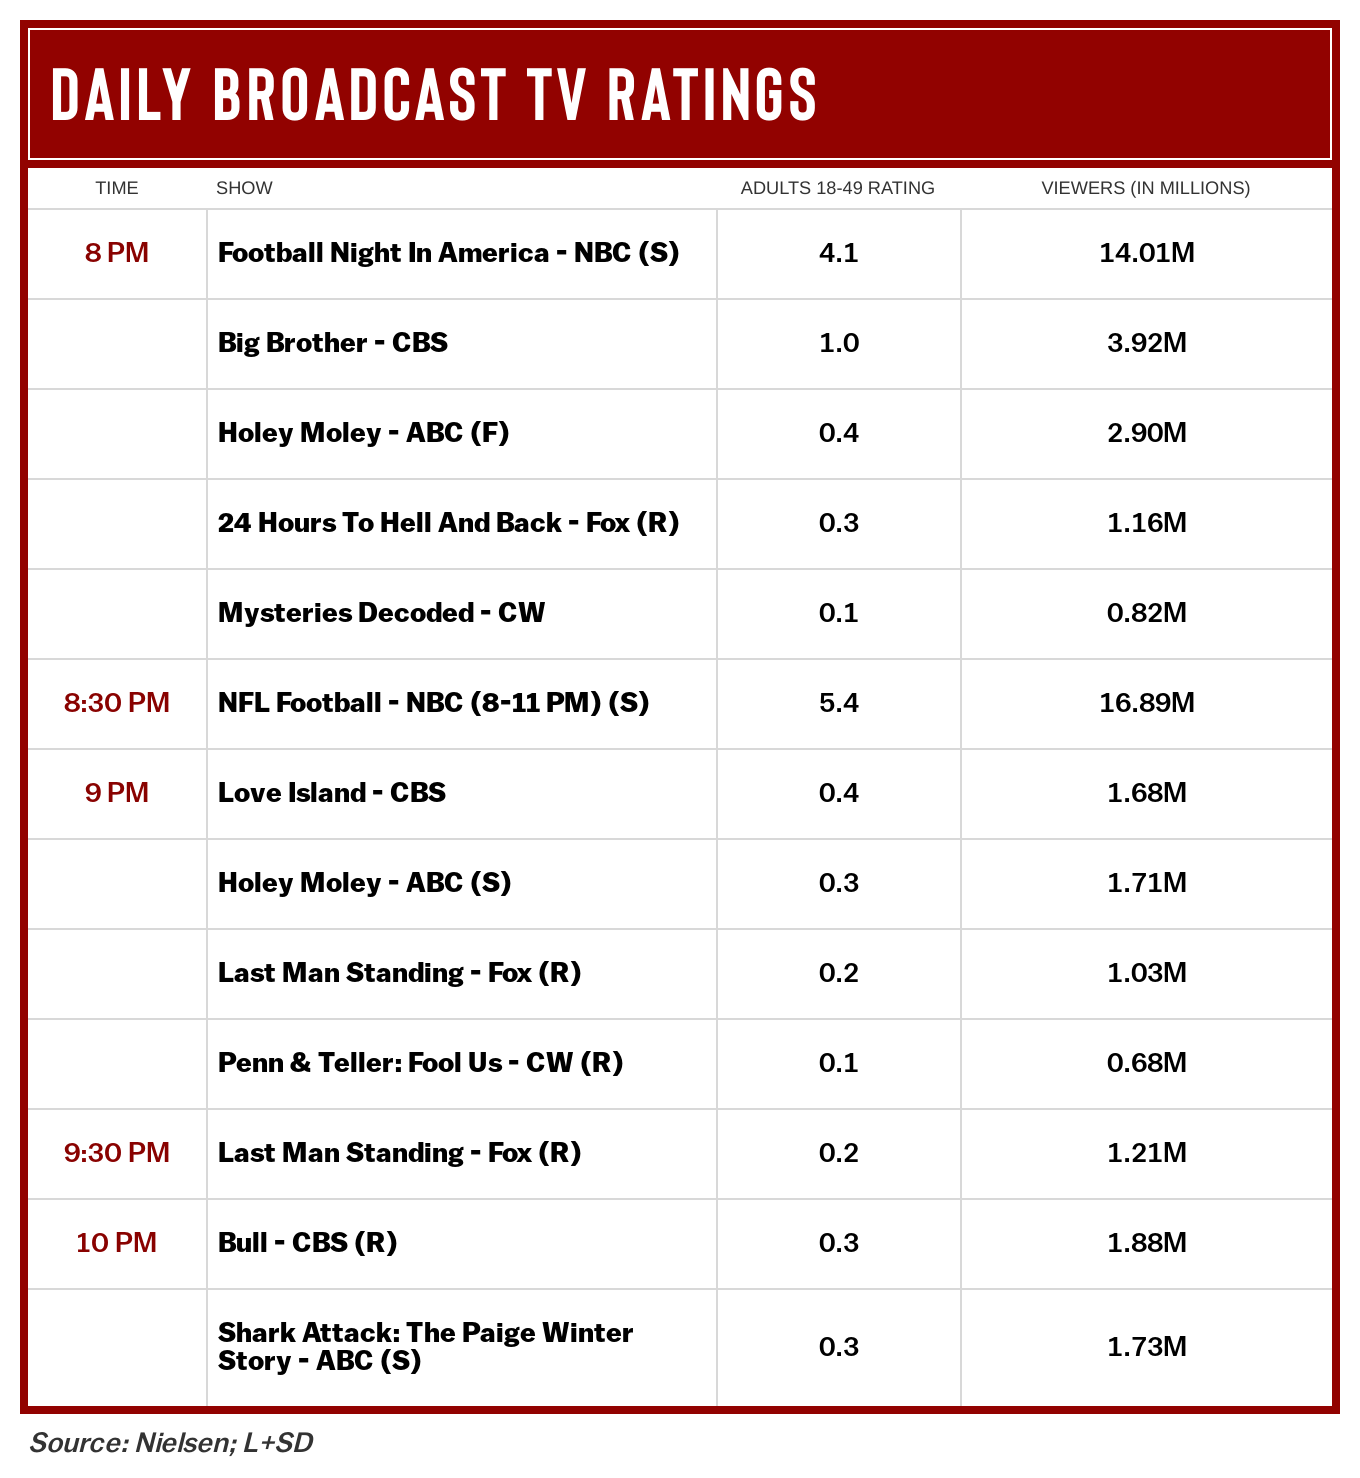 Nfl Season Kickoff Ratings Down Double Digits From 2019 Opener Deadline